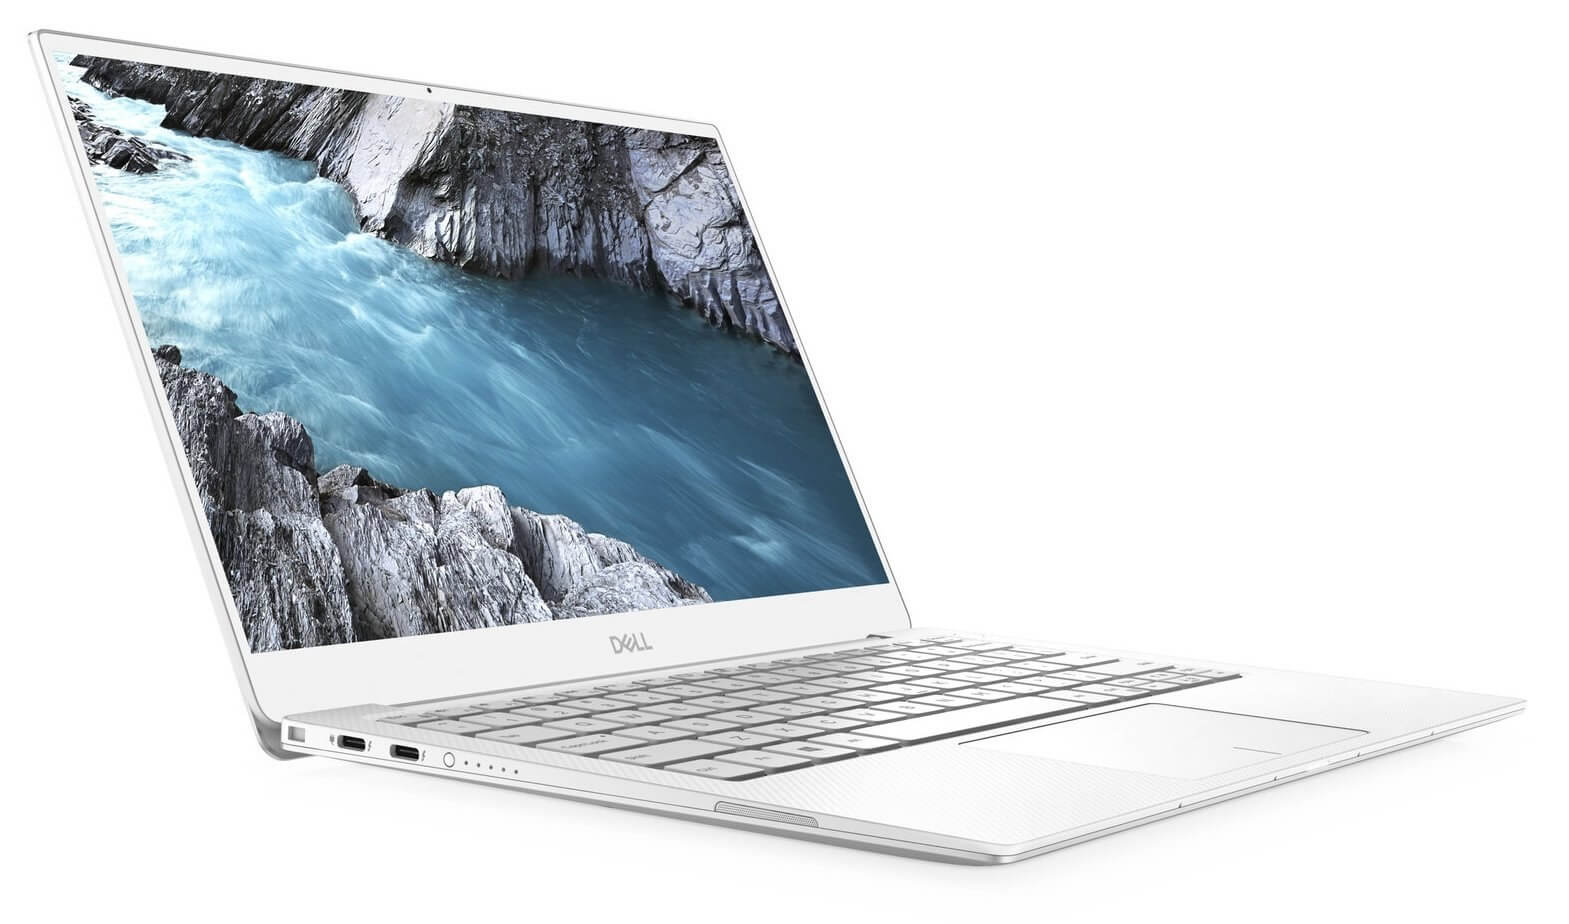 Best Dell Laptop 2020.Best Dell Laptops 2019 Top 10 Just Creative